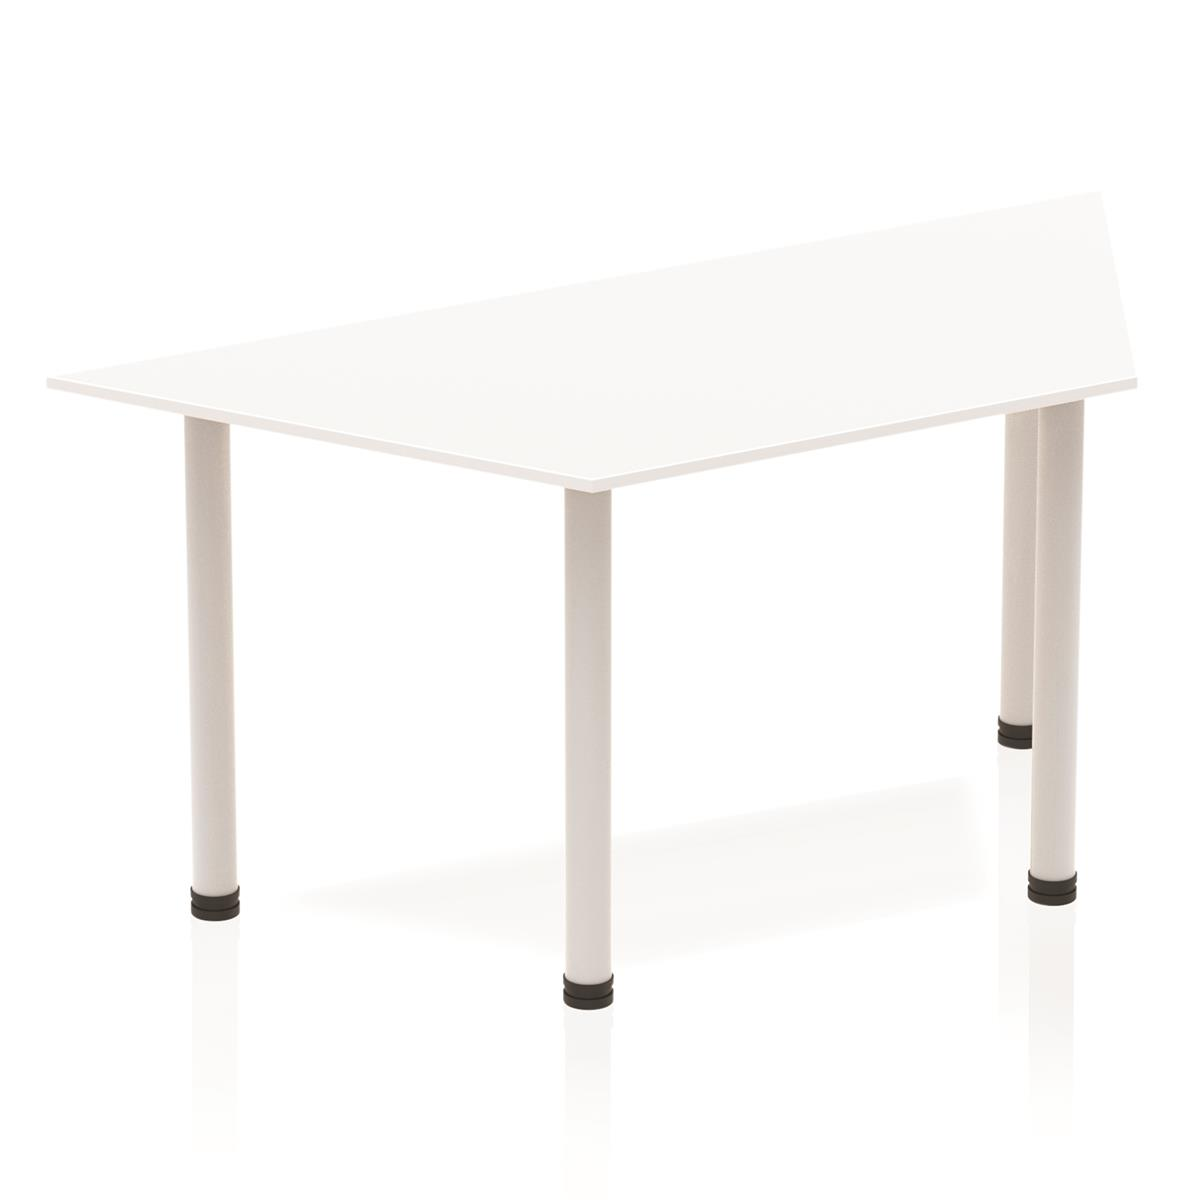 Image for Sonix Trapezium Table Post Leg 1600mm White